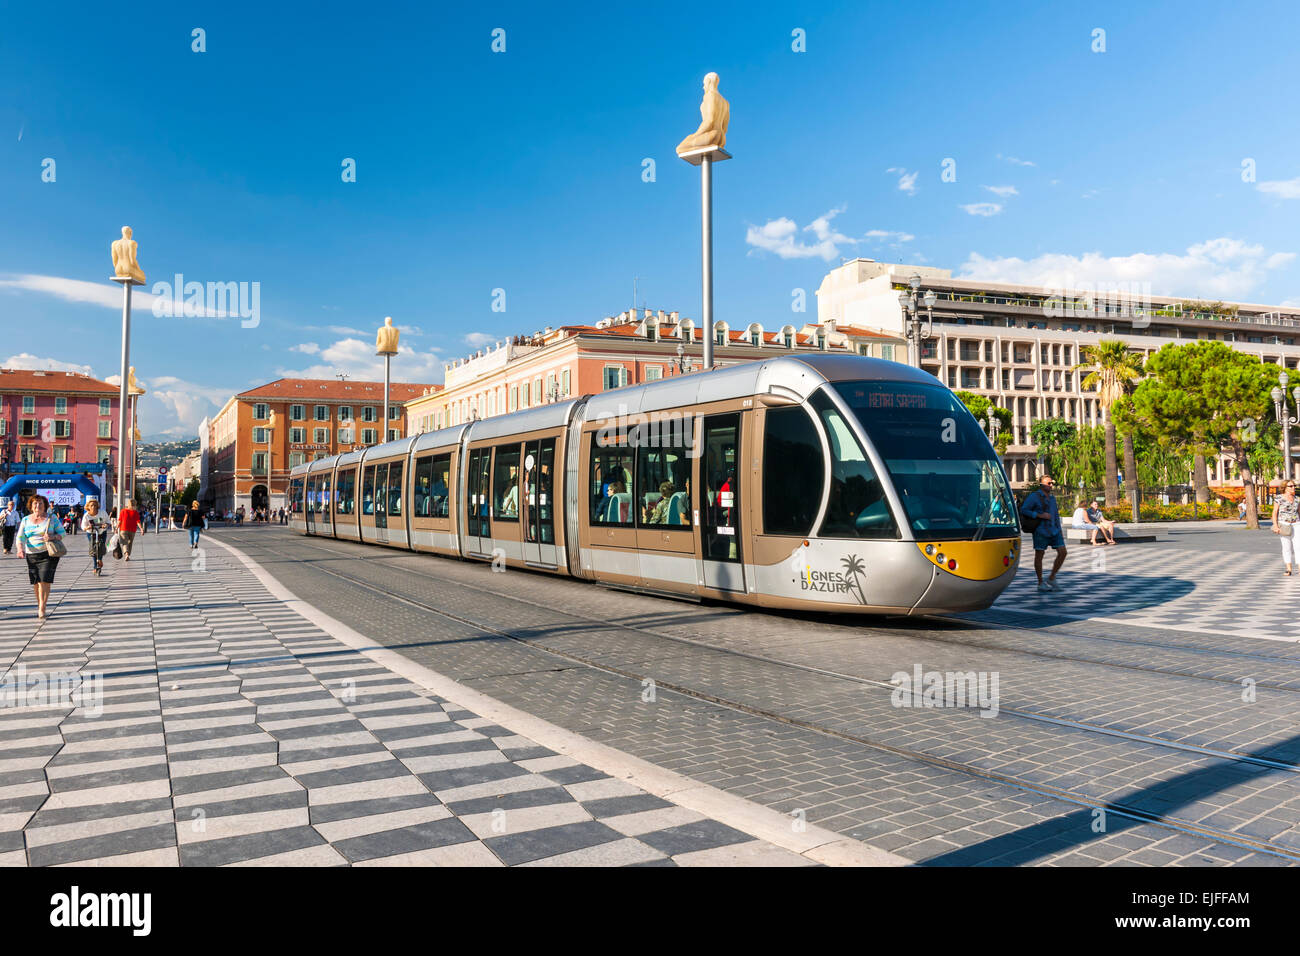 NICE, FRANCE - OCTOBER 2, 2014: Nice tramway at Place Massena, the main pedestrian square of the city. Stock Photo